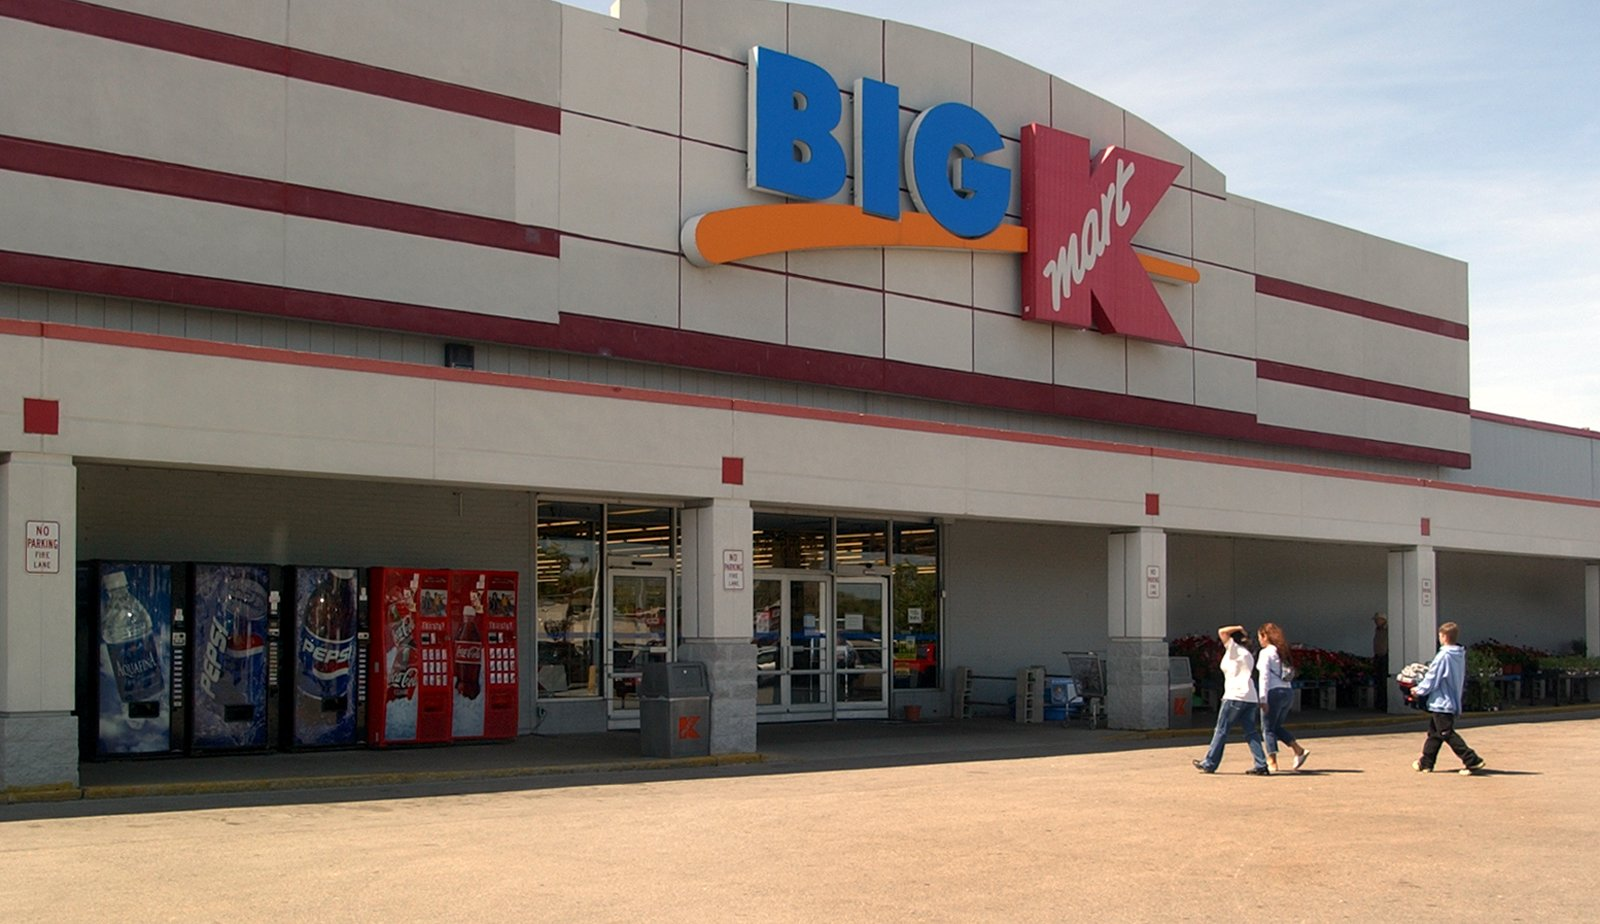 Last area Kmart to close in January - The Blade